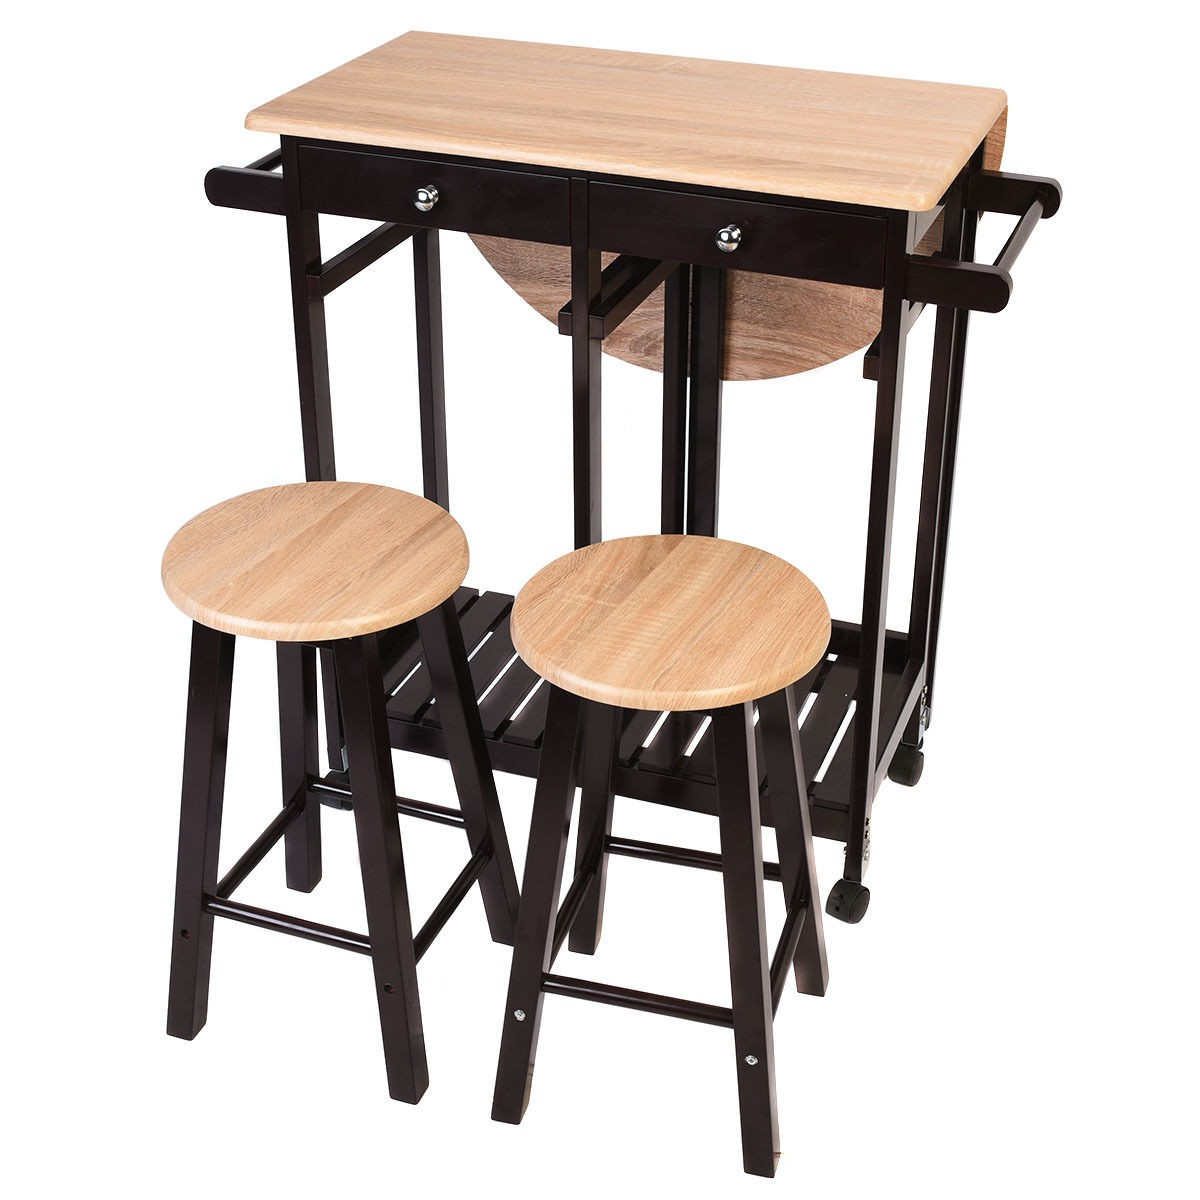 3pcs kitchen island set with drop leaf table 2 stools wood - Kitchen island with stools ...